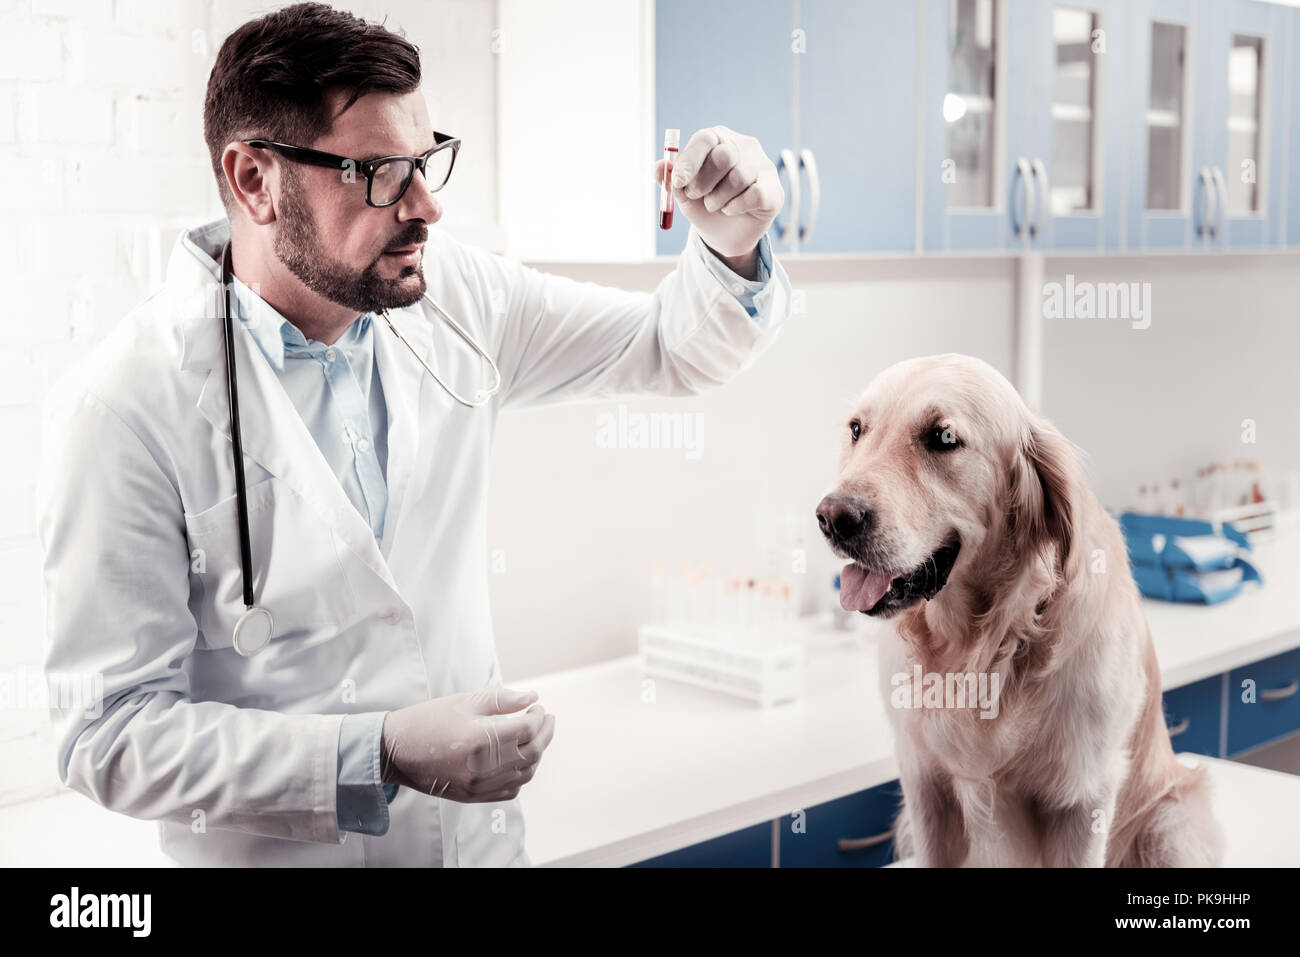 Serious veterinary looking at test tube - Stock Image